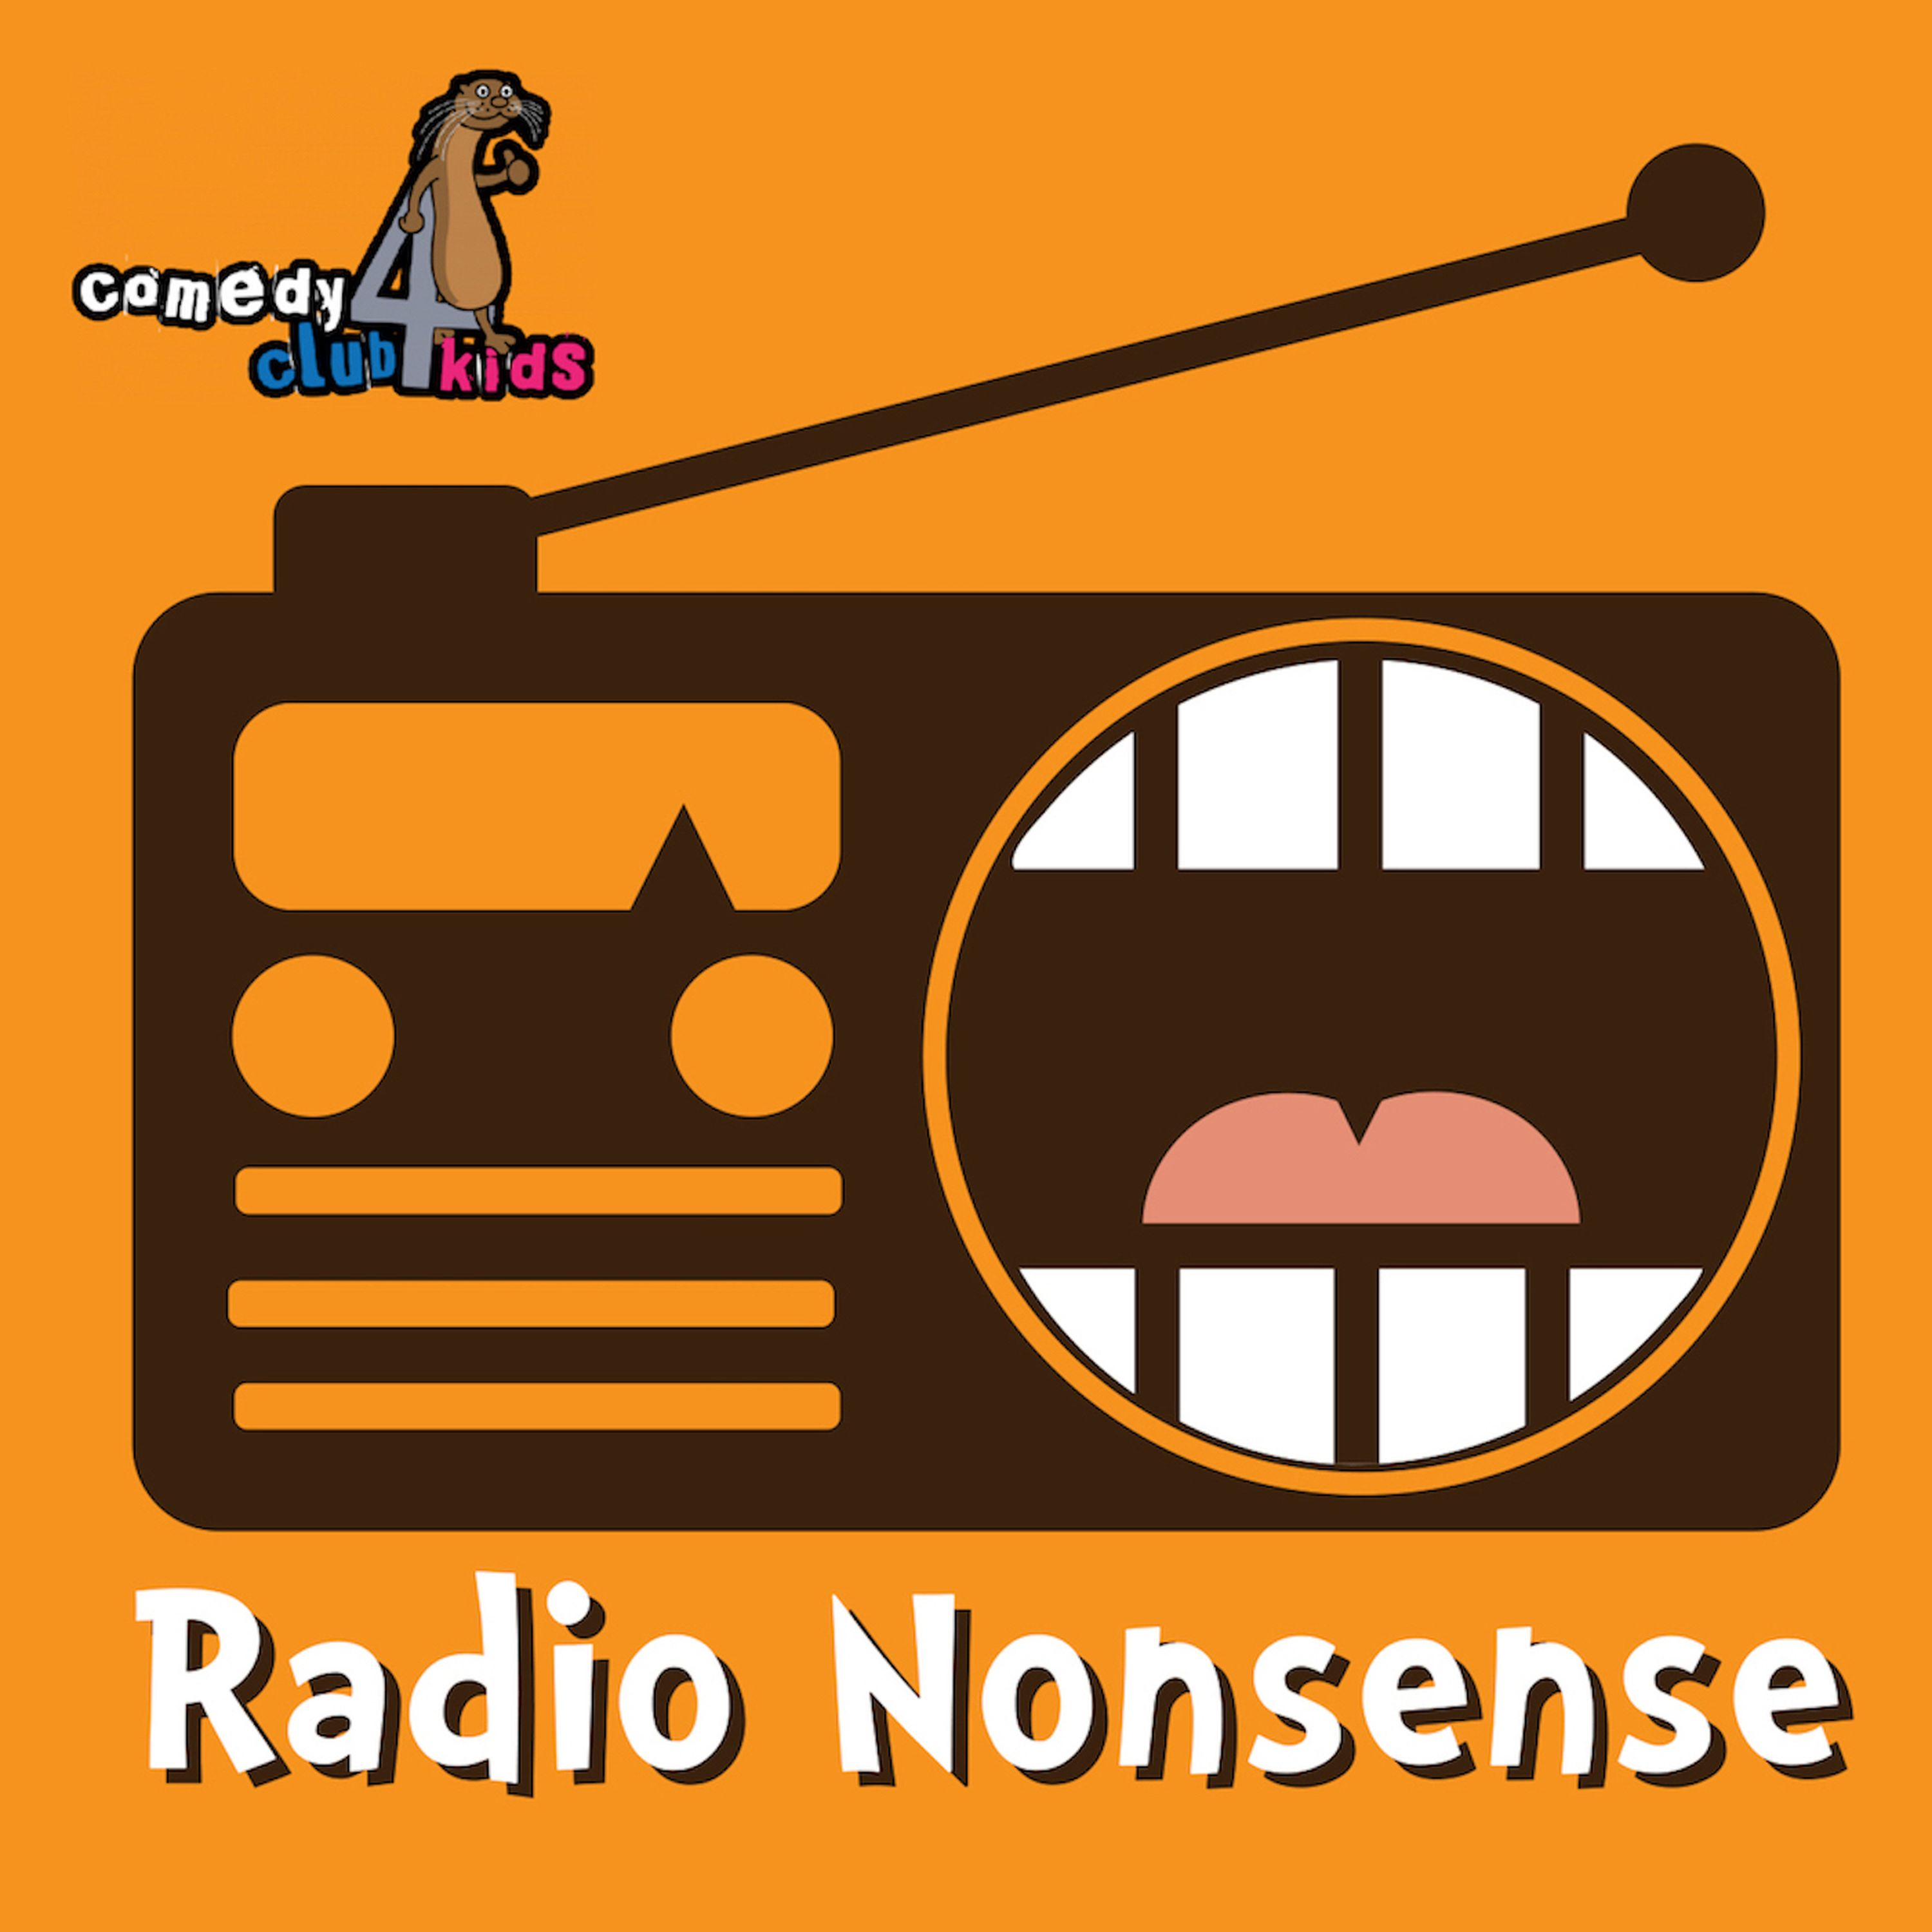 Can You Help A Radio Nonsense This Christmas?